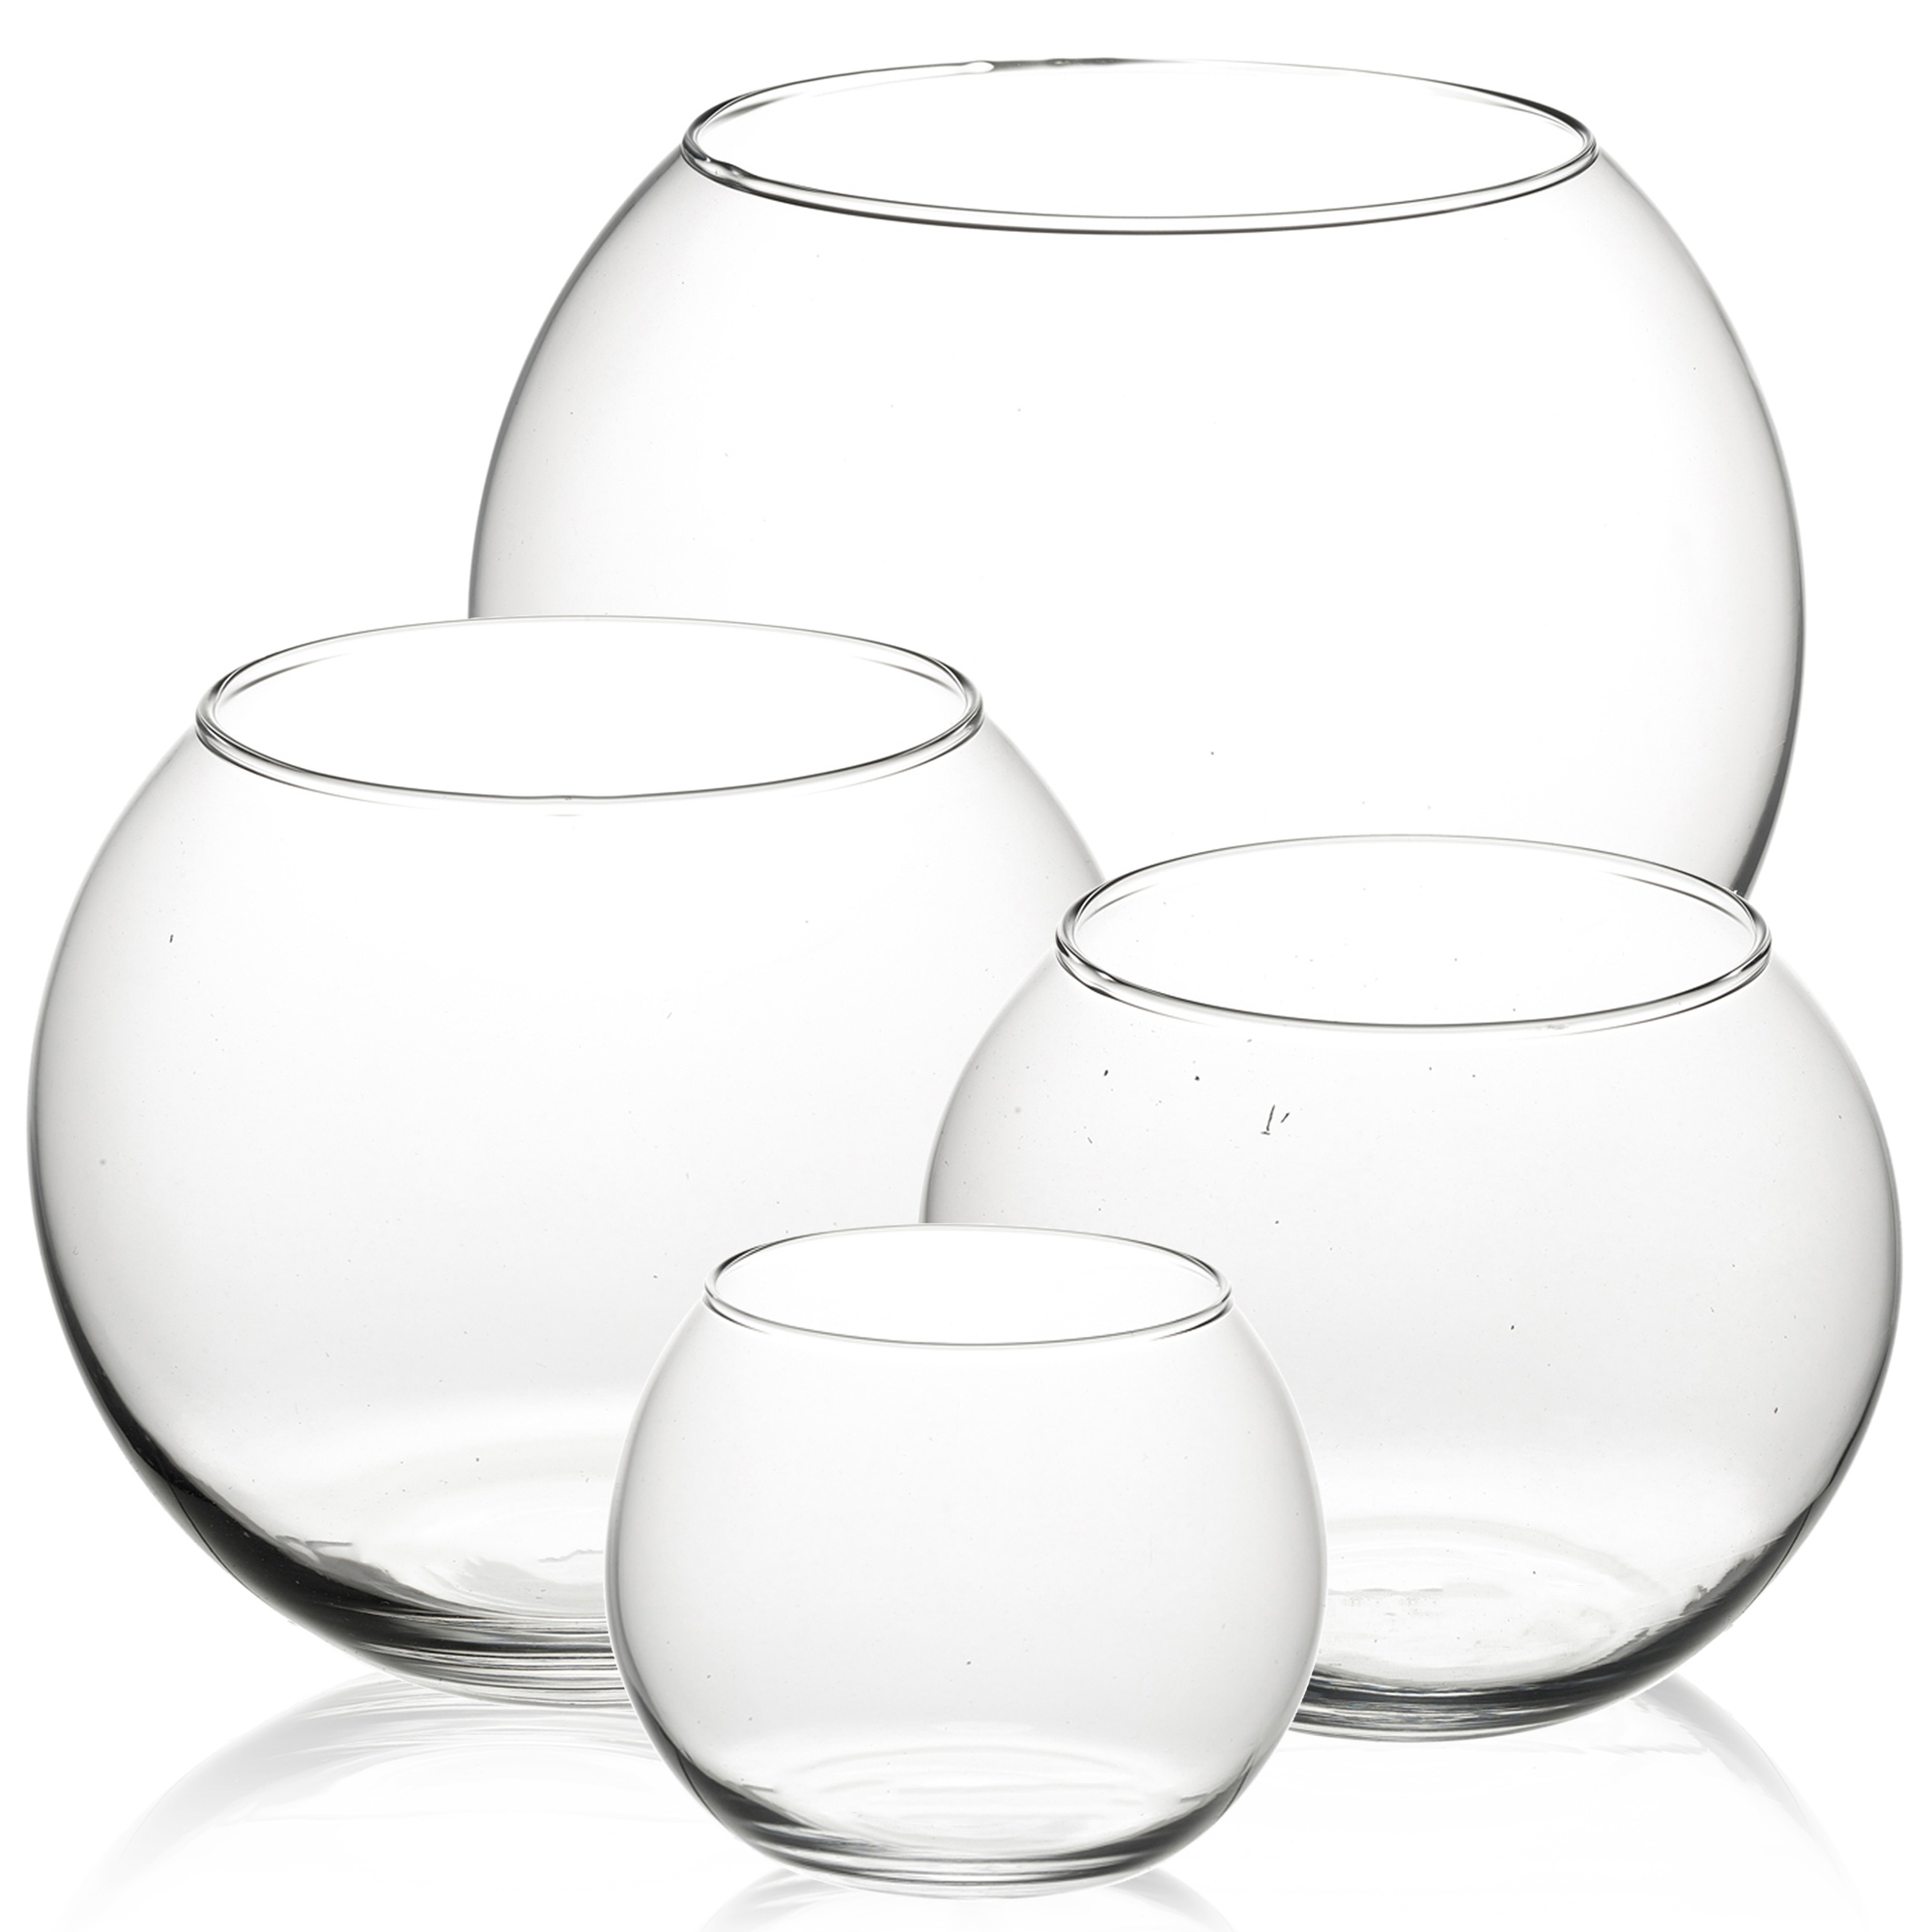 pasabahce round glass flower vase fish bowl balloon centerpiece wedding giftbox ebay. Black Bedroom Furniture Sets. Home Design Ideas